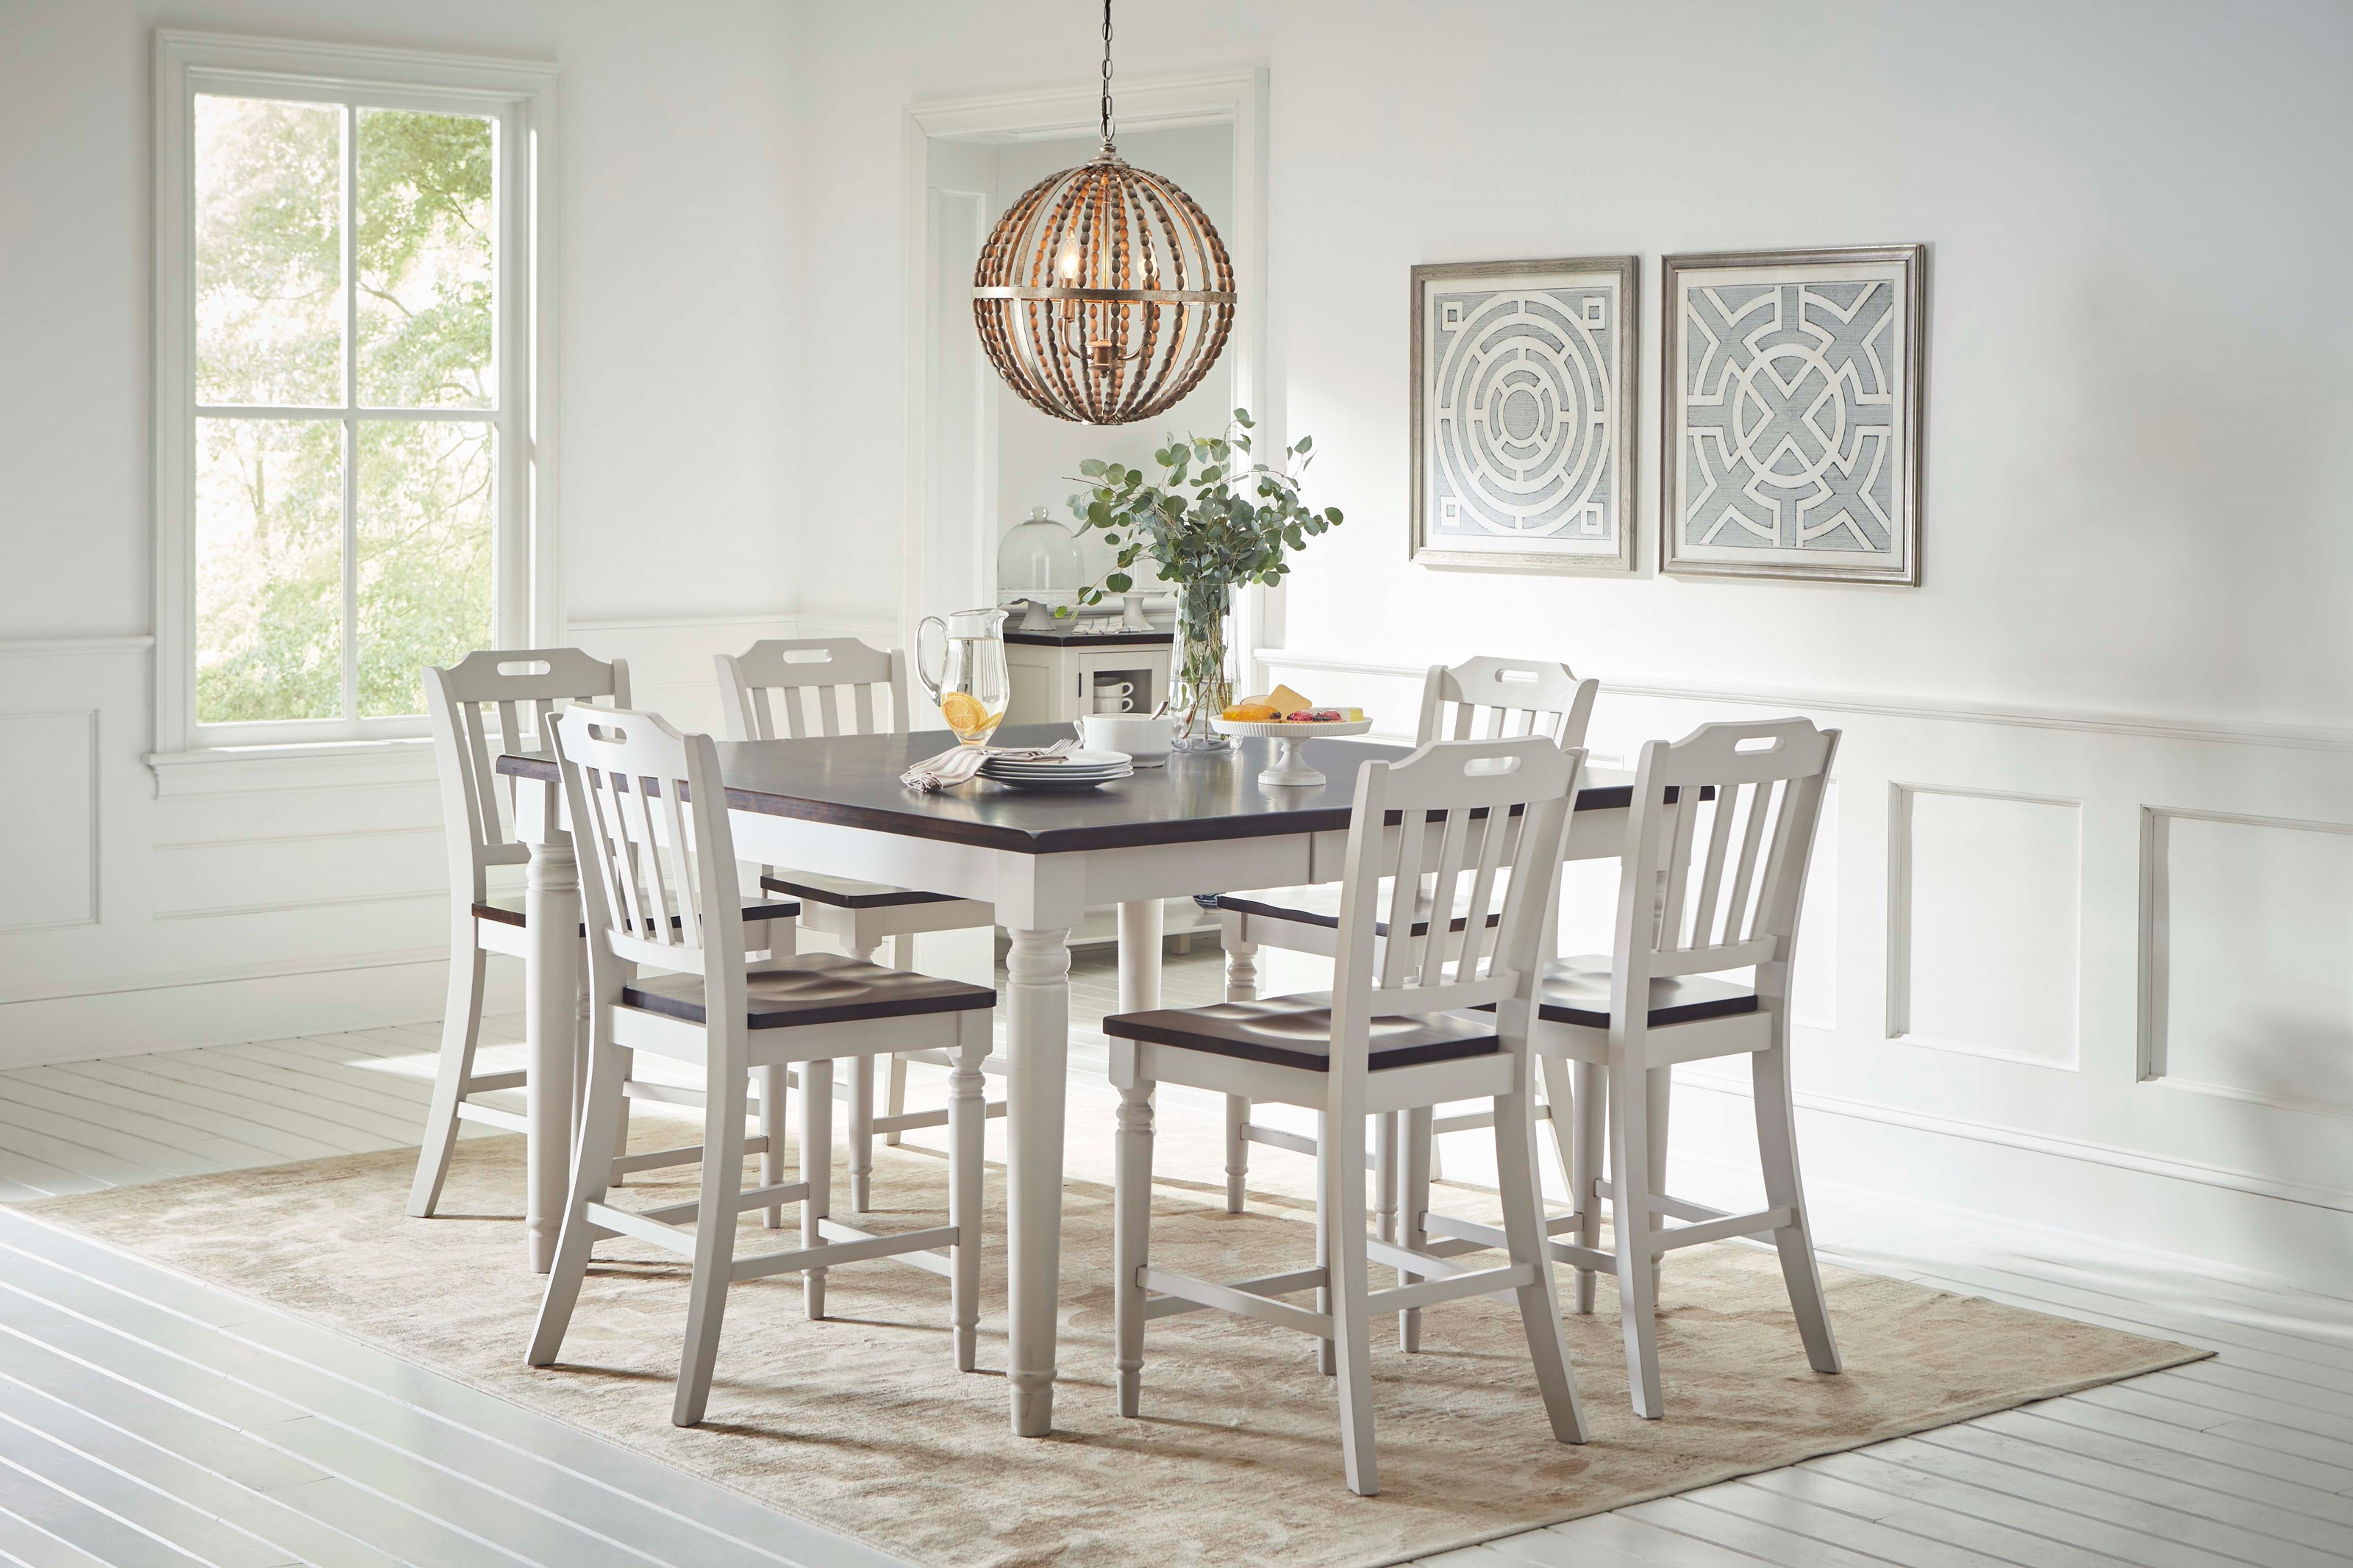 Orchard Park Counter Height Dining Table with 8 Chairs by Jofran at Jofran